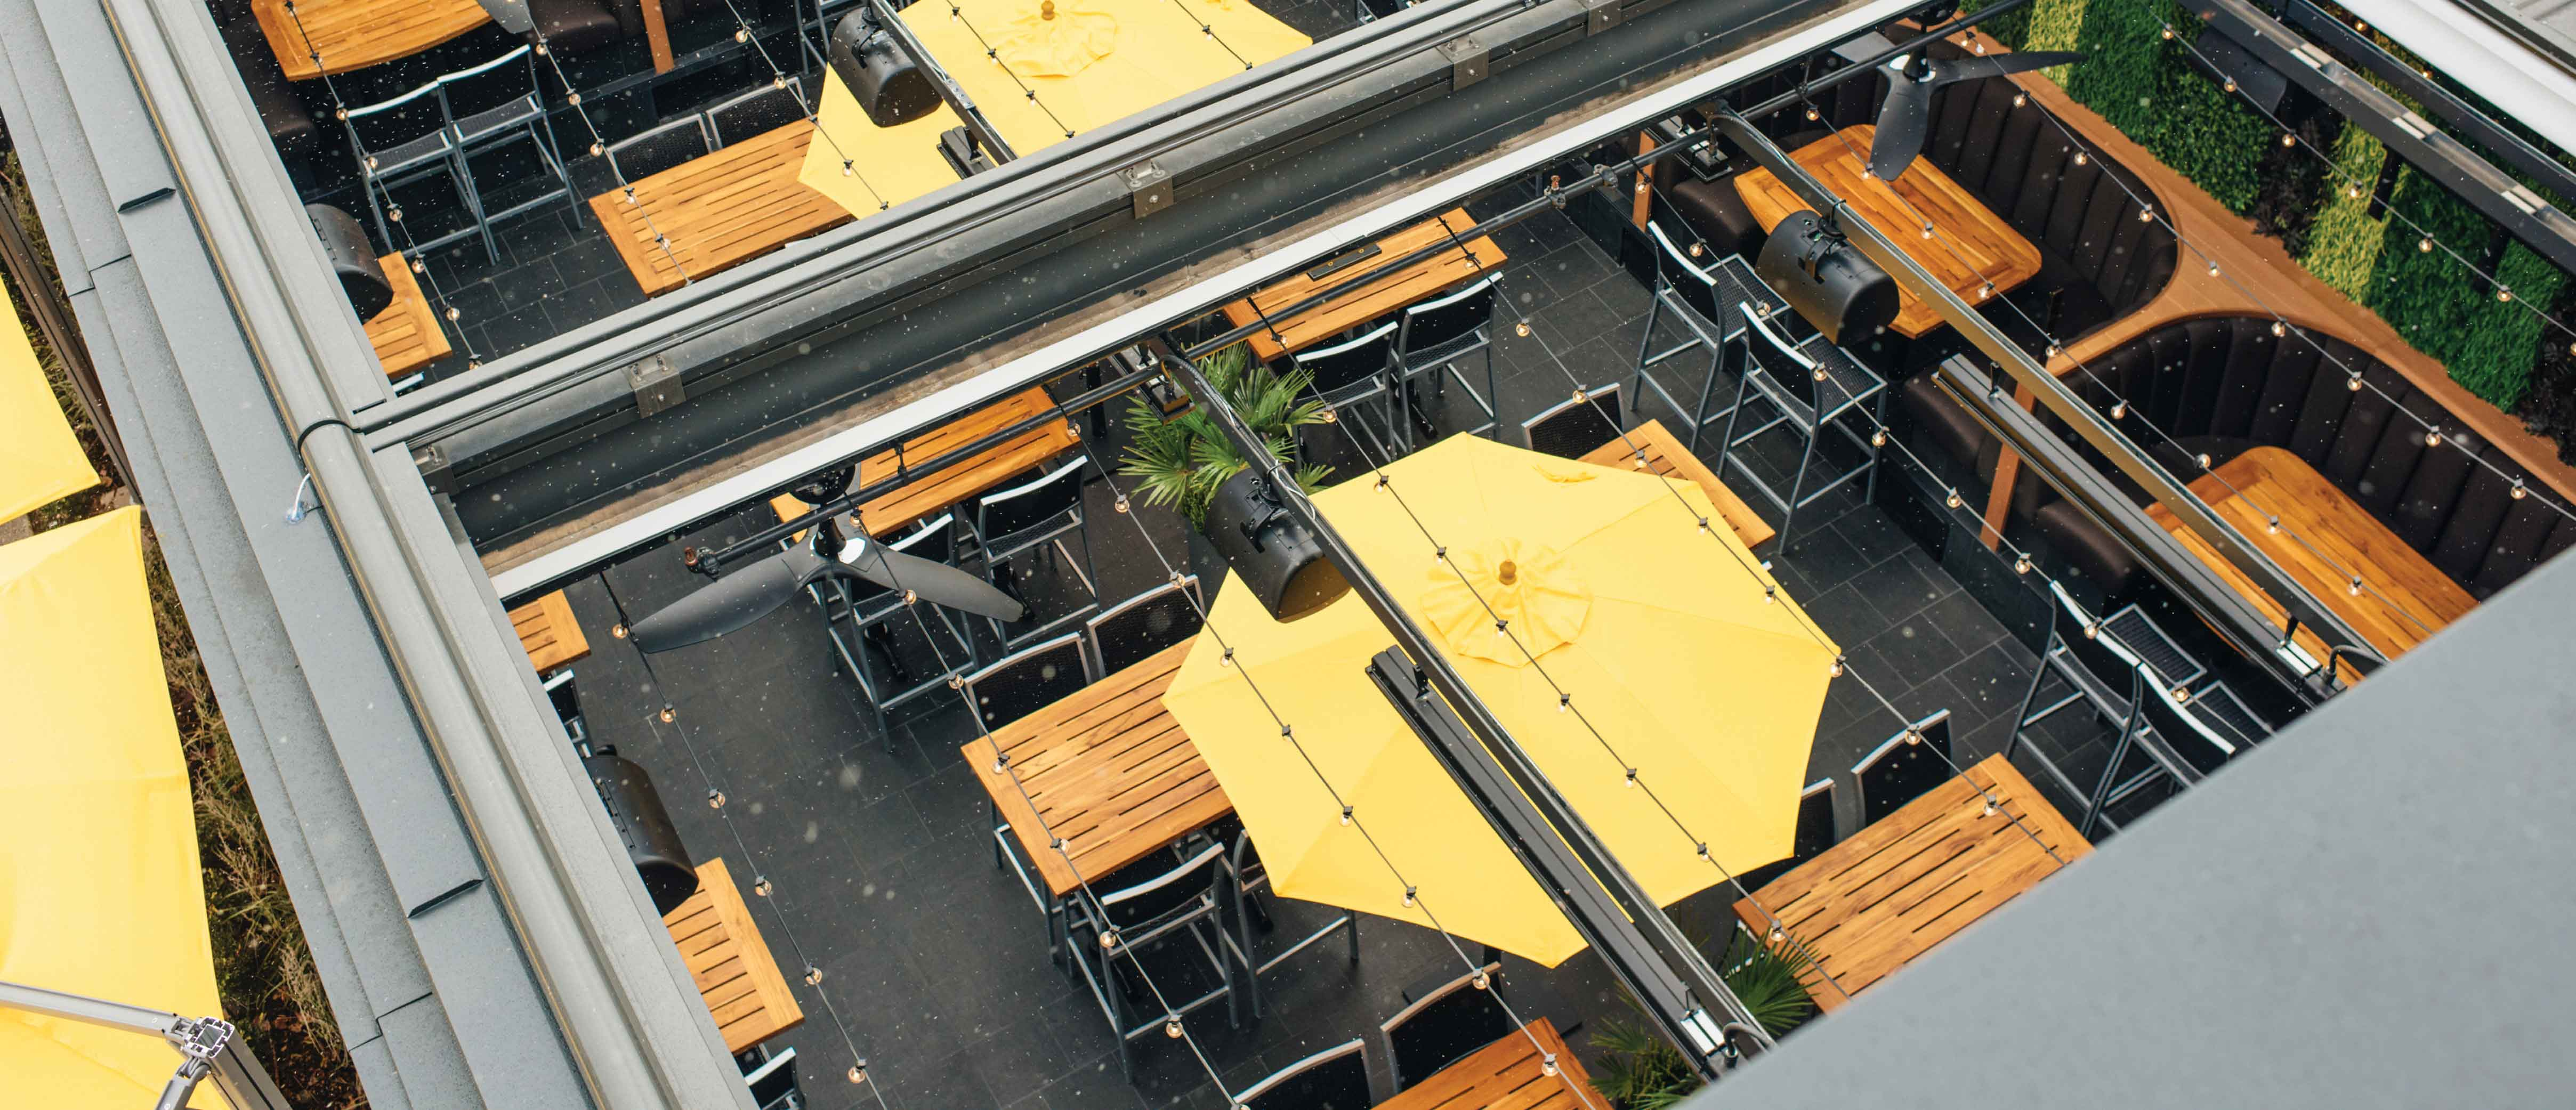 Cactus Club Cafe Richmond Centre | All season patio with retractable roof